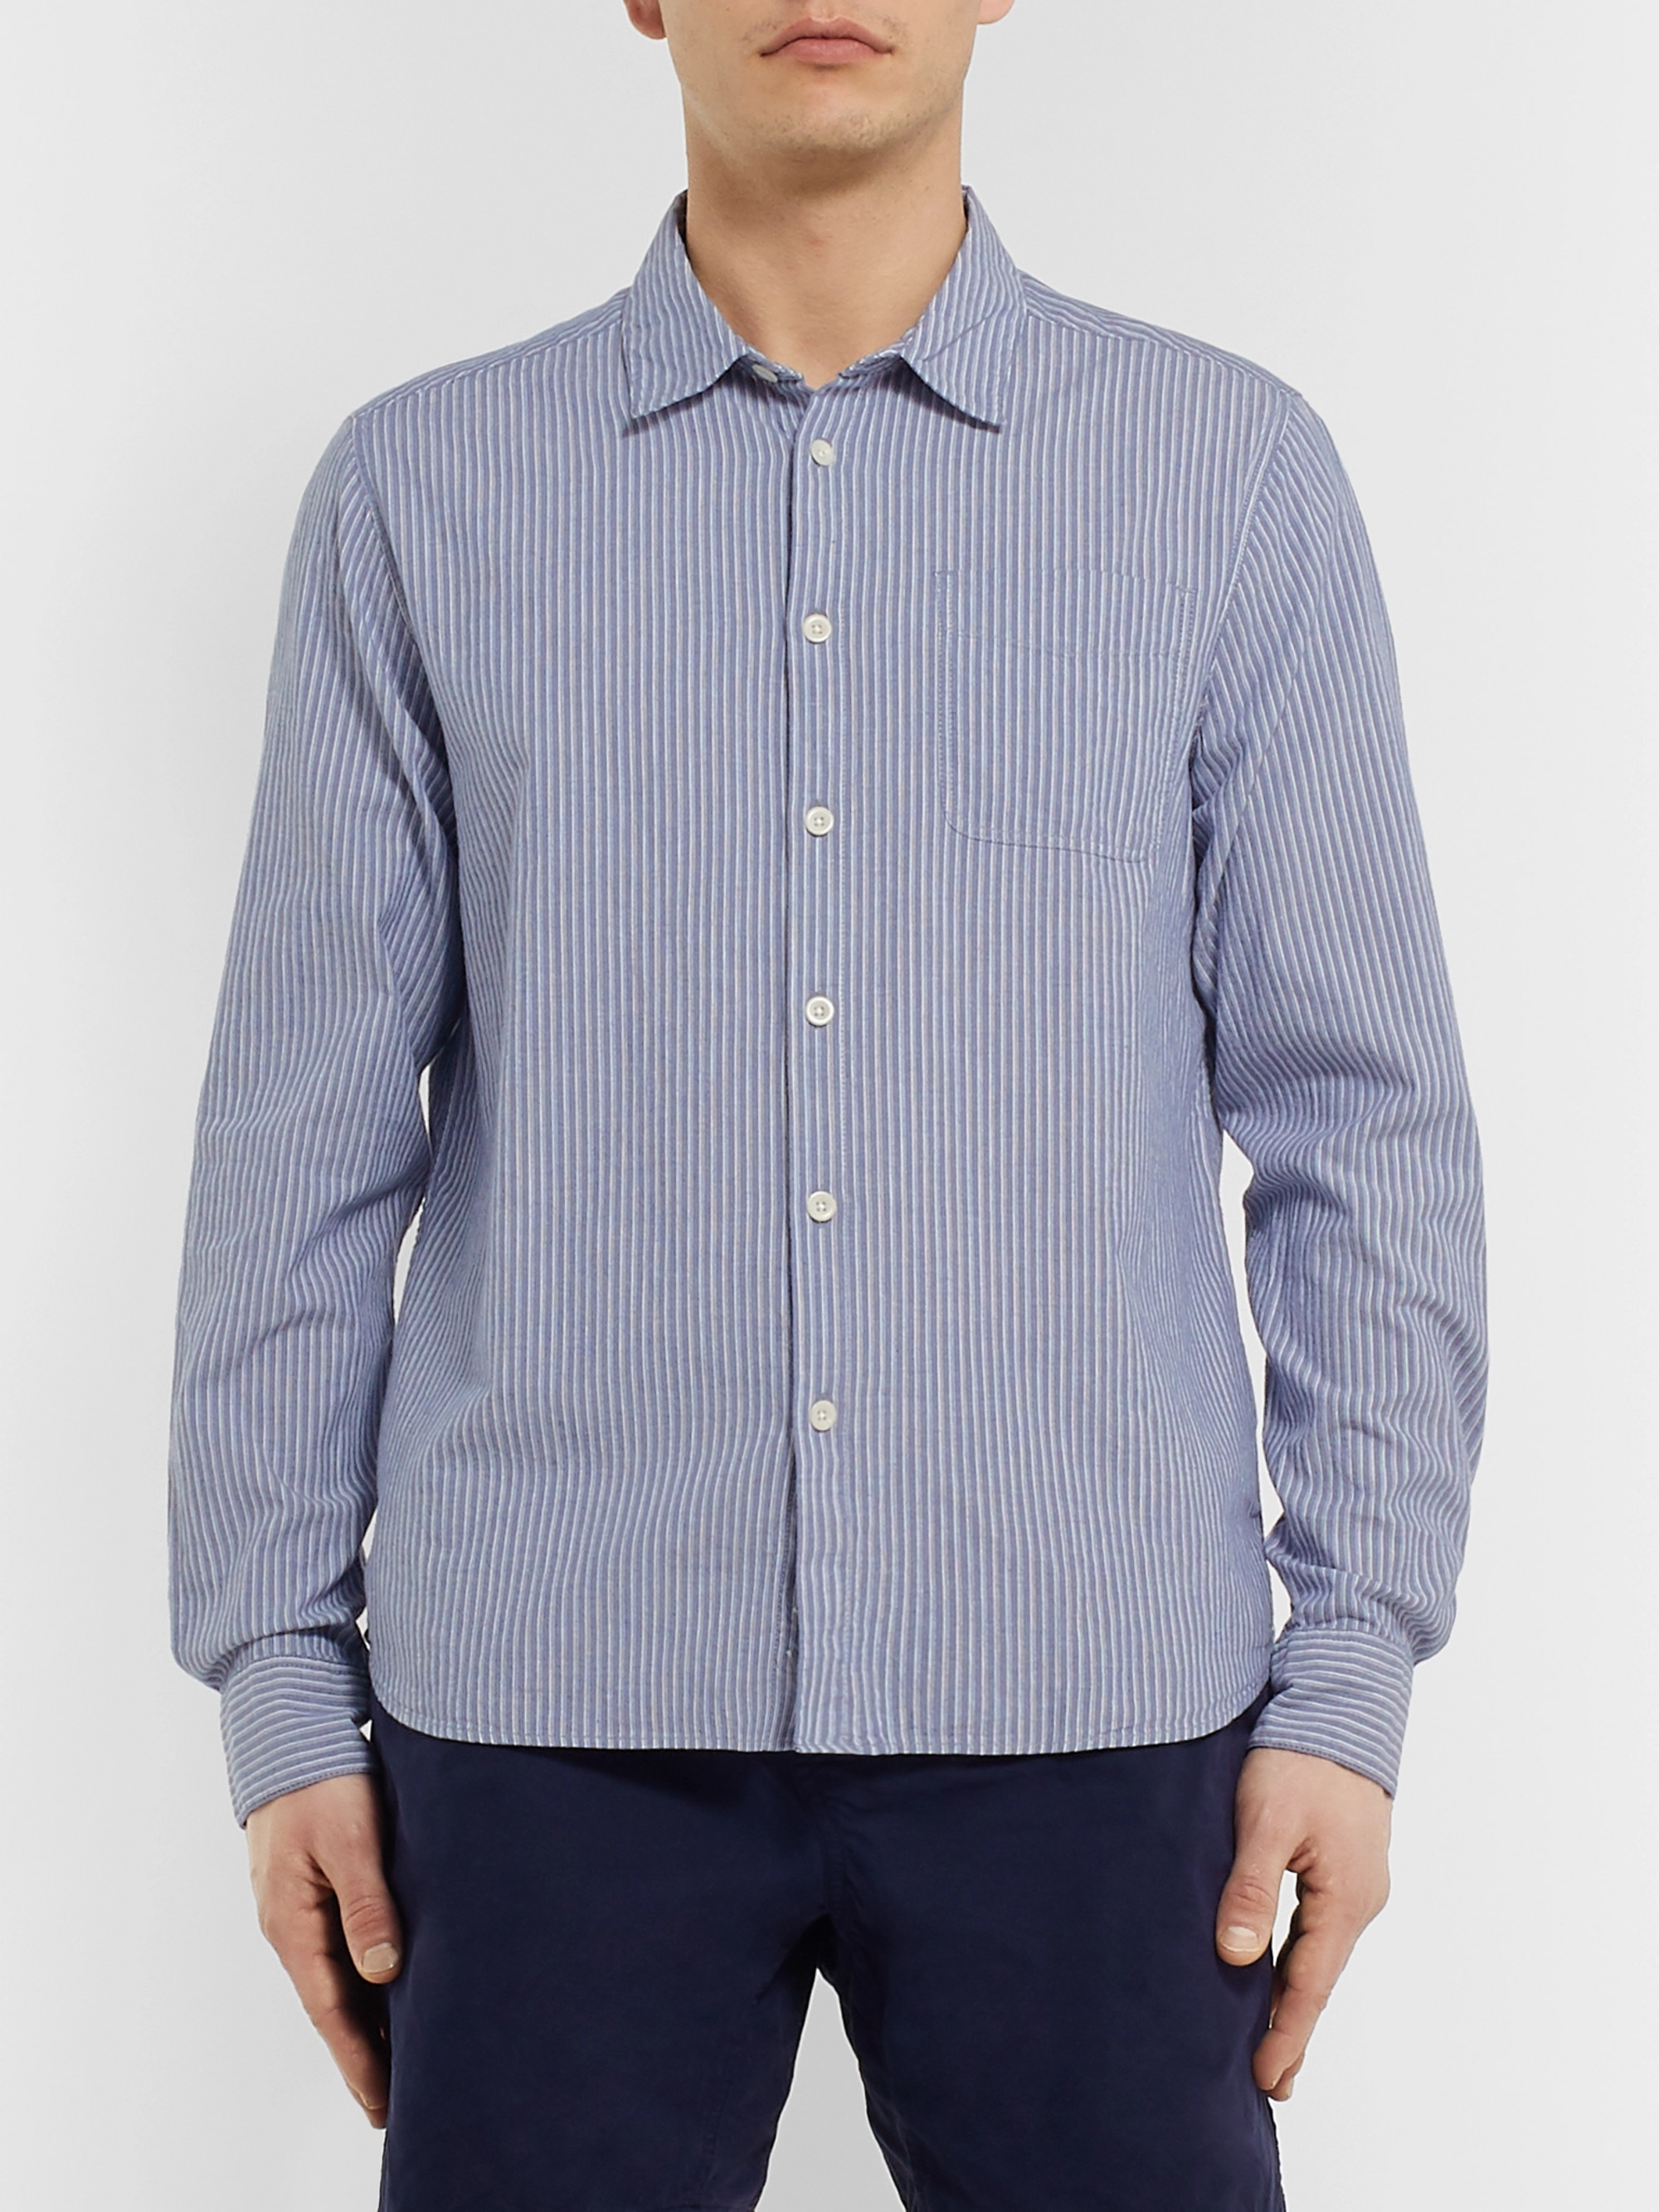 Albam Striped Cotton Oxford Shirt